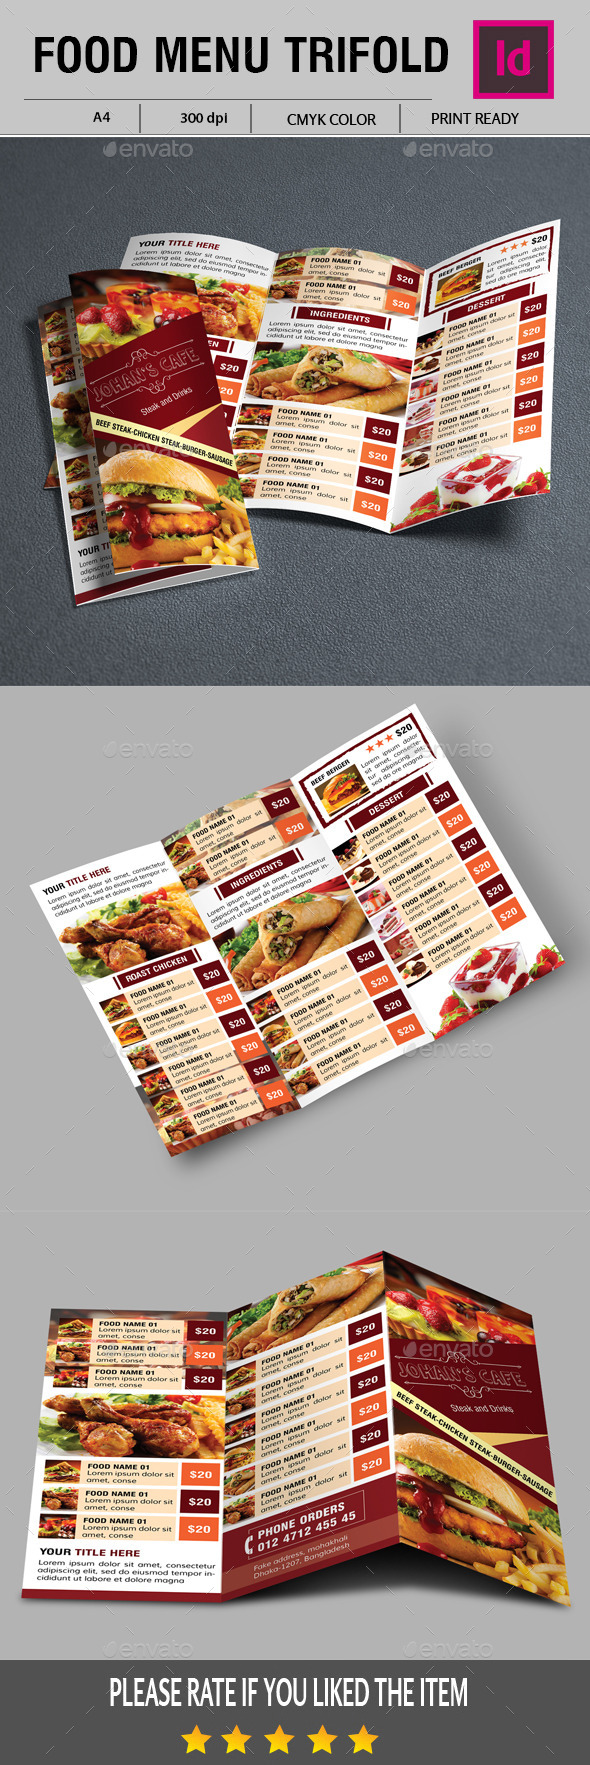 Food Menu Trifold - Food Menus Print Templates